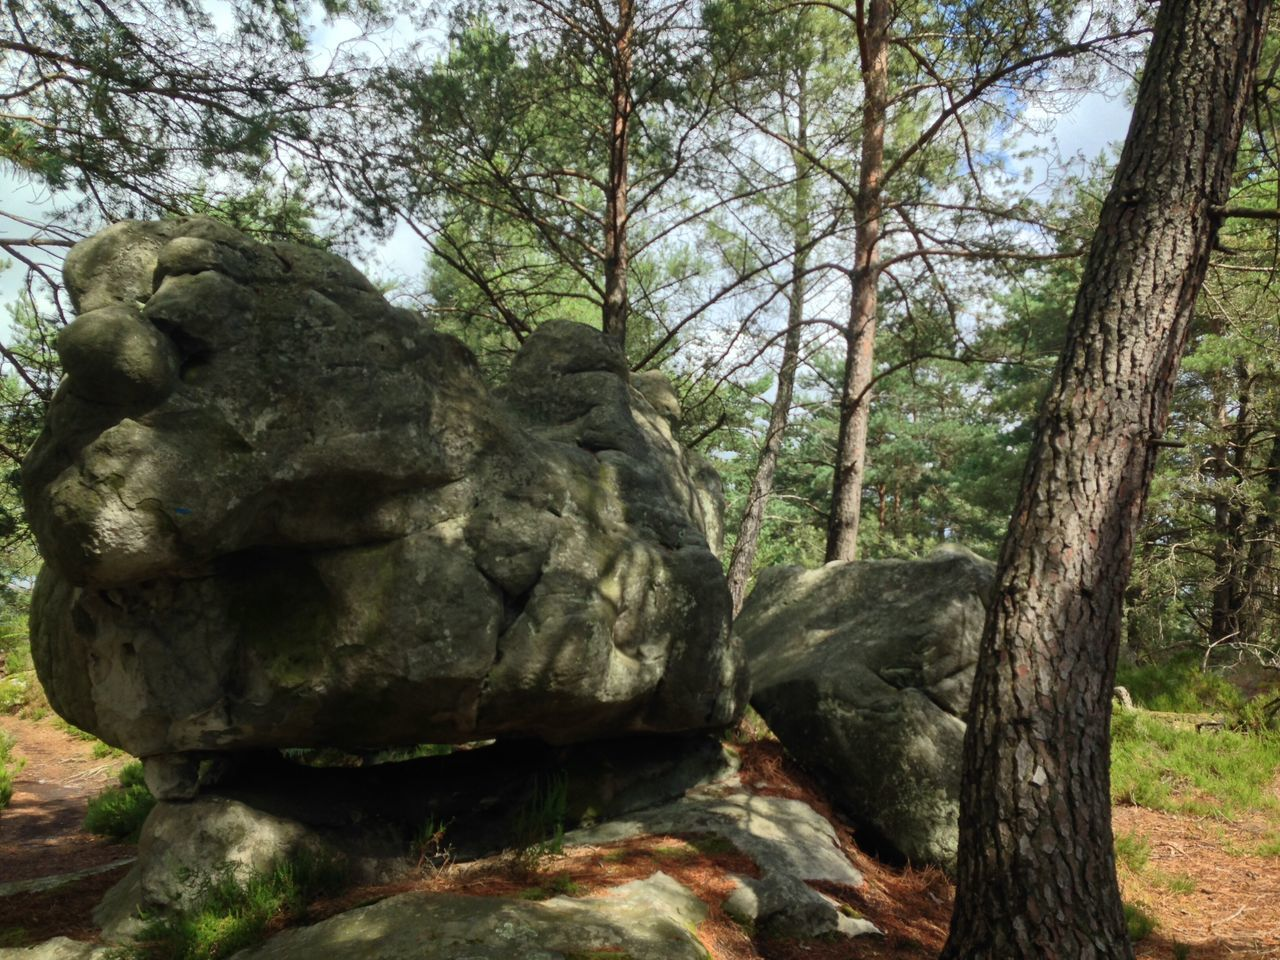 Tree Rock - Object Nature Day Outdoors No People Forest Tranquility Moss Travel Destinations Tree Trunk Beauty In Nature Scenics Branch Sky